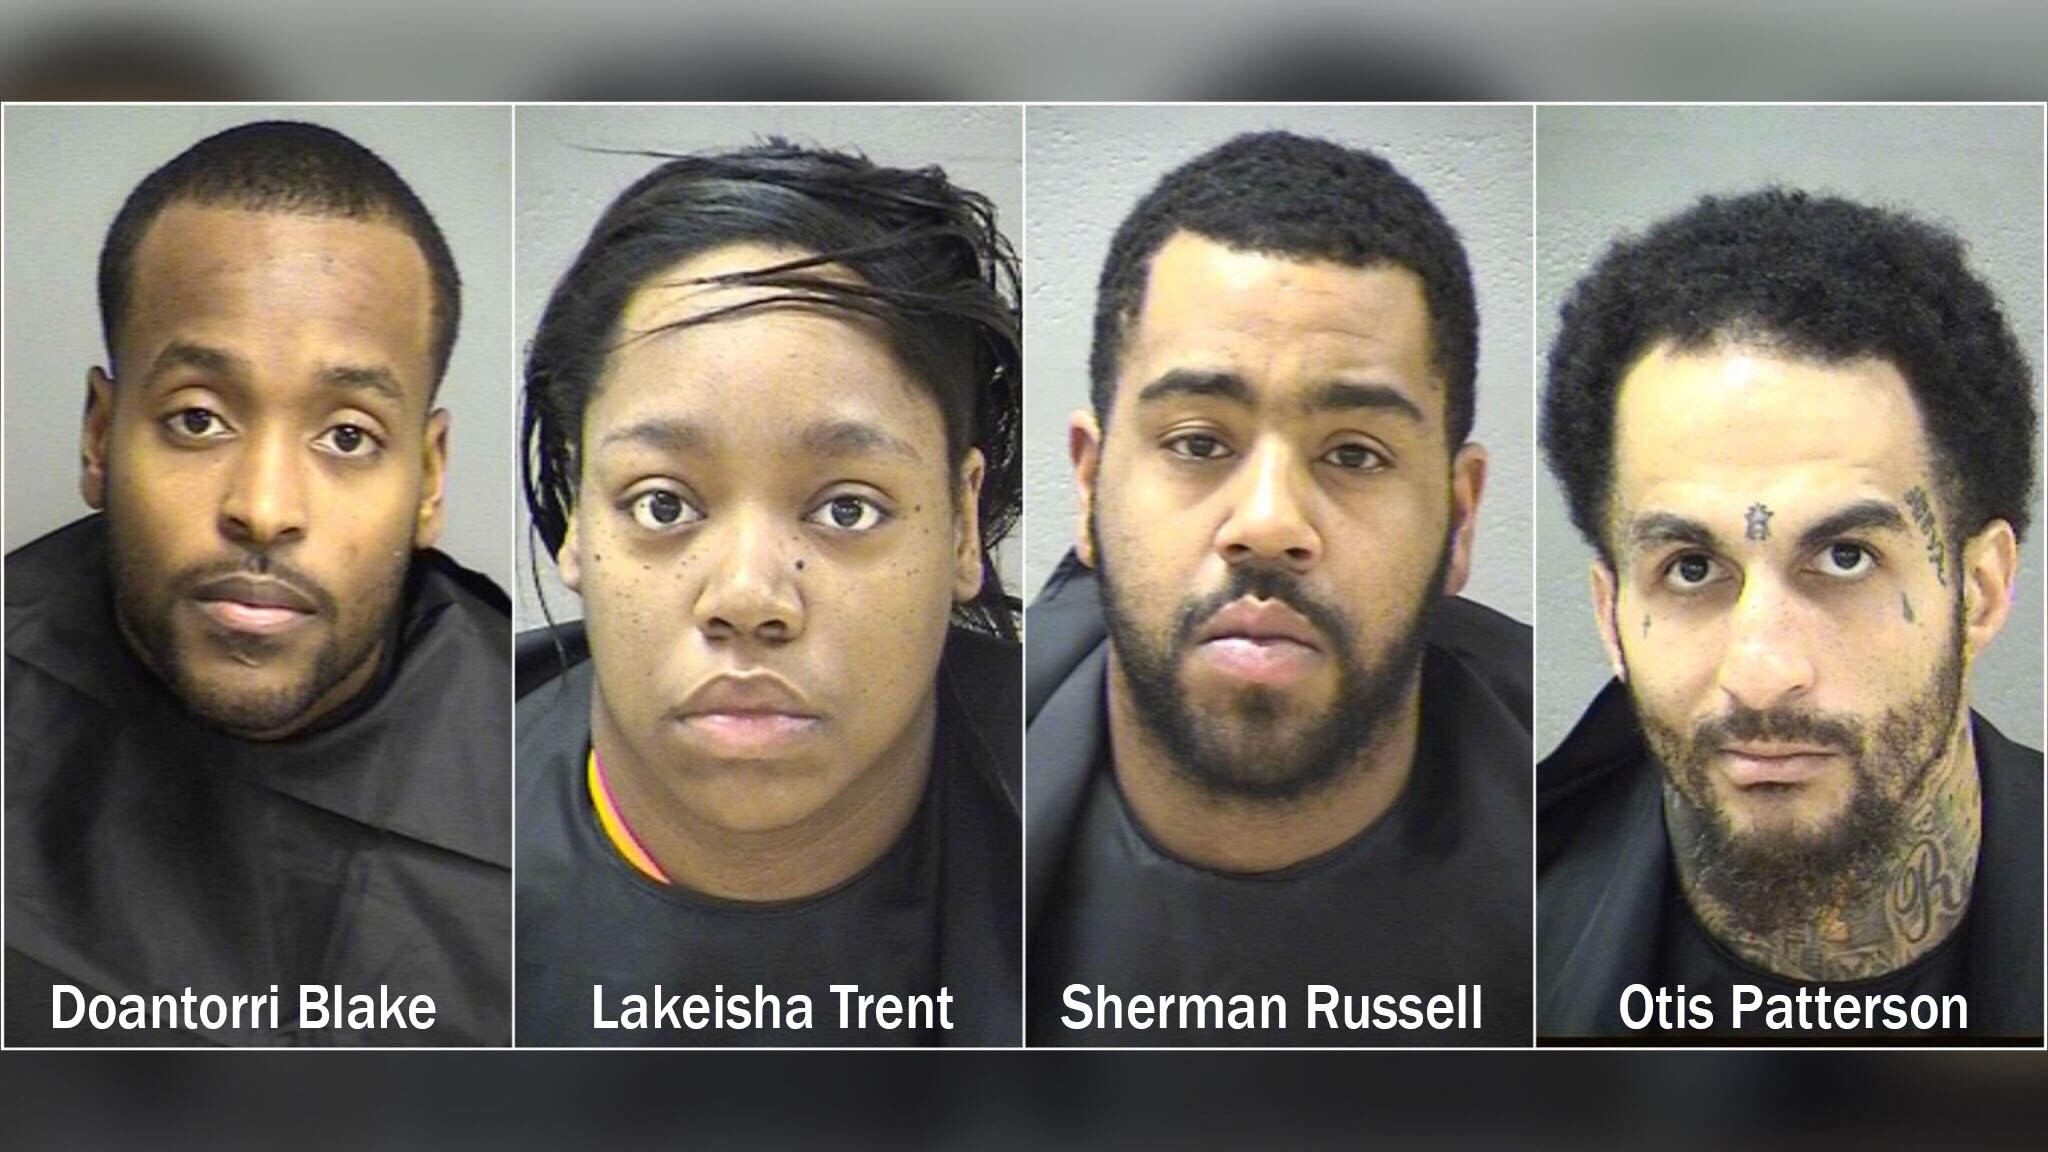 Sherman D. Russell, 27, of Lynchburg, Otis L. Patterson, 27, of Lynchburg and Lakeisha S. Trent, 23, of Lynchburg were arrested and charged with armed robbery, grand larceny of firearms, and grand larceny of money, as well as use of a firearm in the commission of a felony; Doantorri Blake, 27, of Lynchburg is wanted.